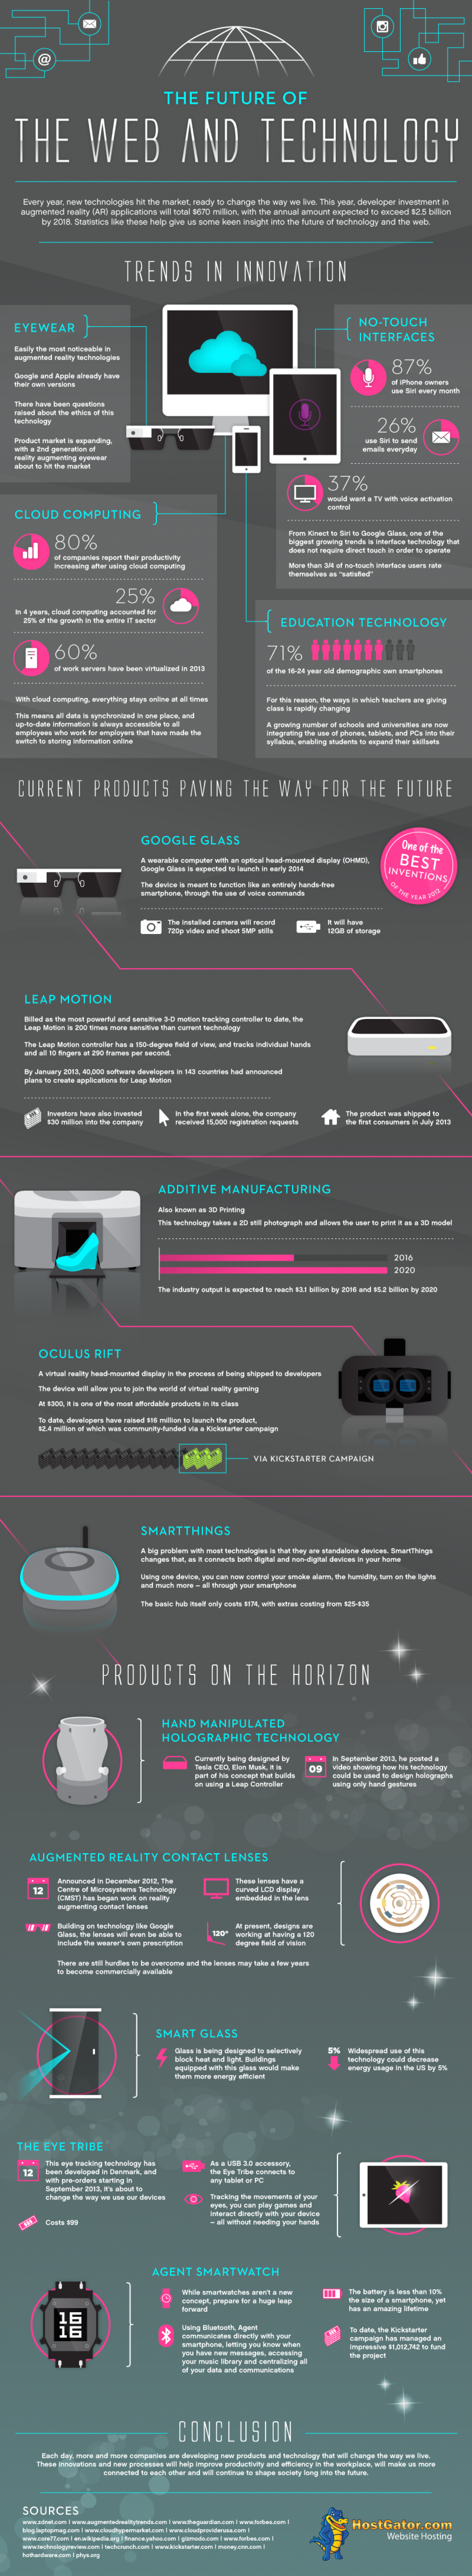 The Future of Web and Technology Infographic